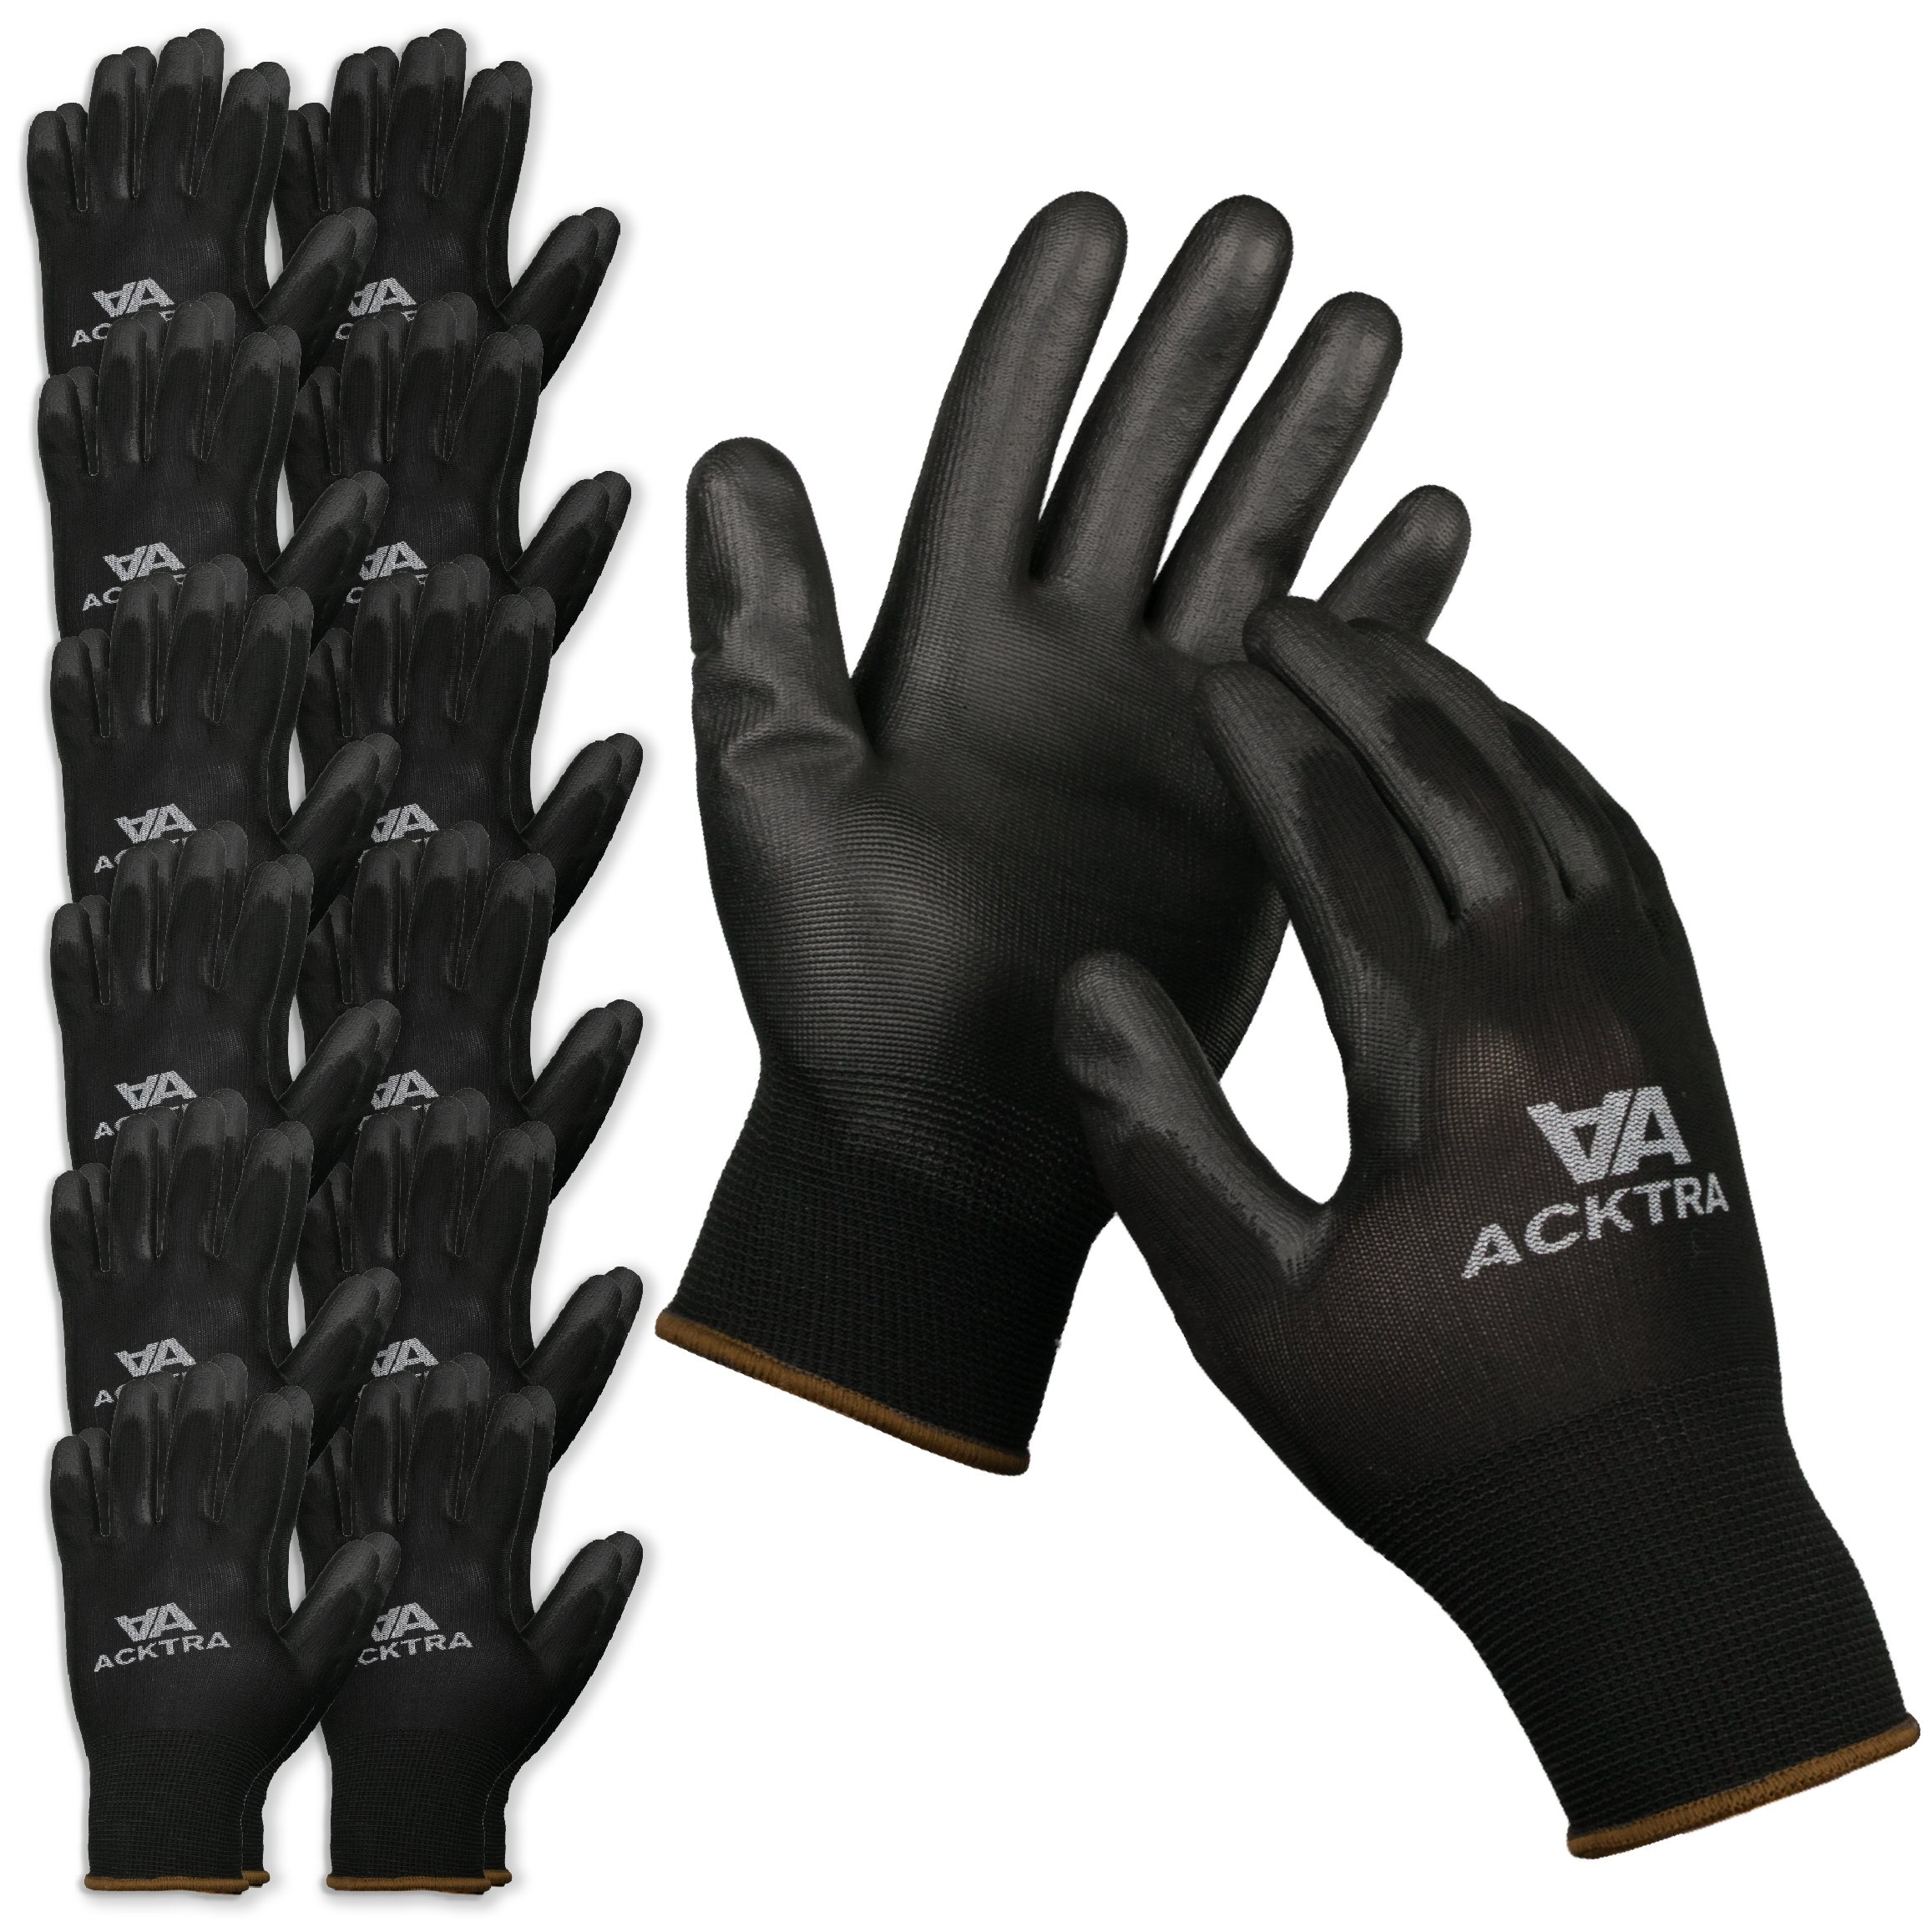 ACKTRA Ultra-Thin Polyurethane (PU) Coated Nylon WORK GLOVES 12 Pairs, Knit Wrist Cuff, for Precision Work, for Men & Women, WG002 Black Medium by Acktra